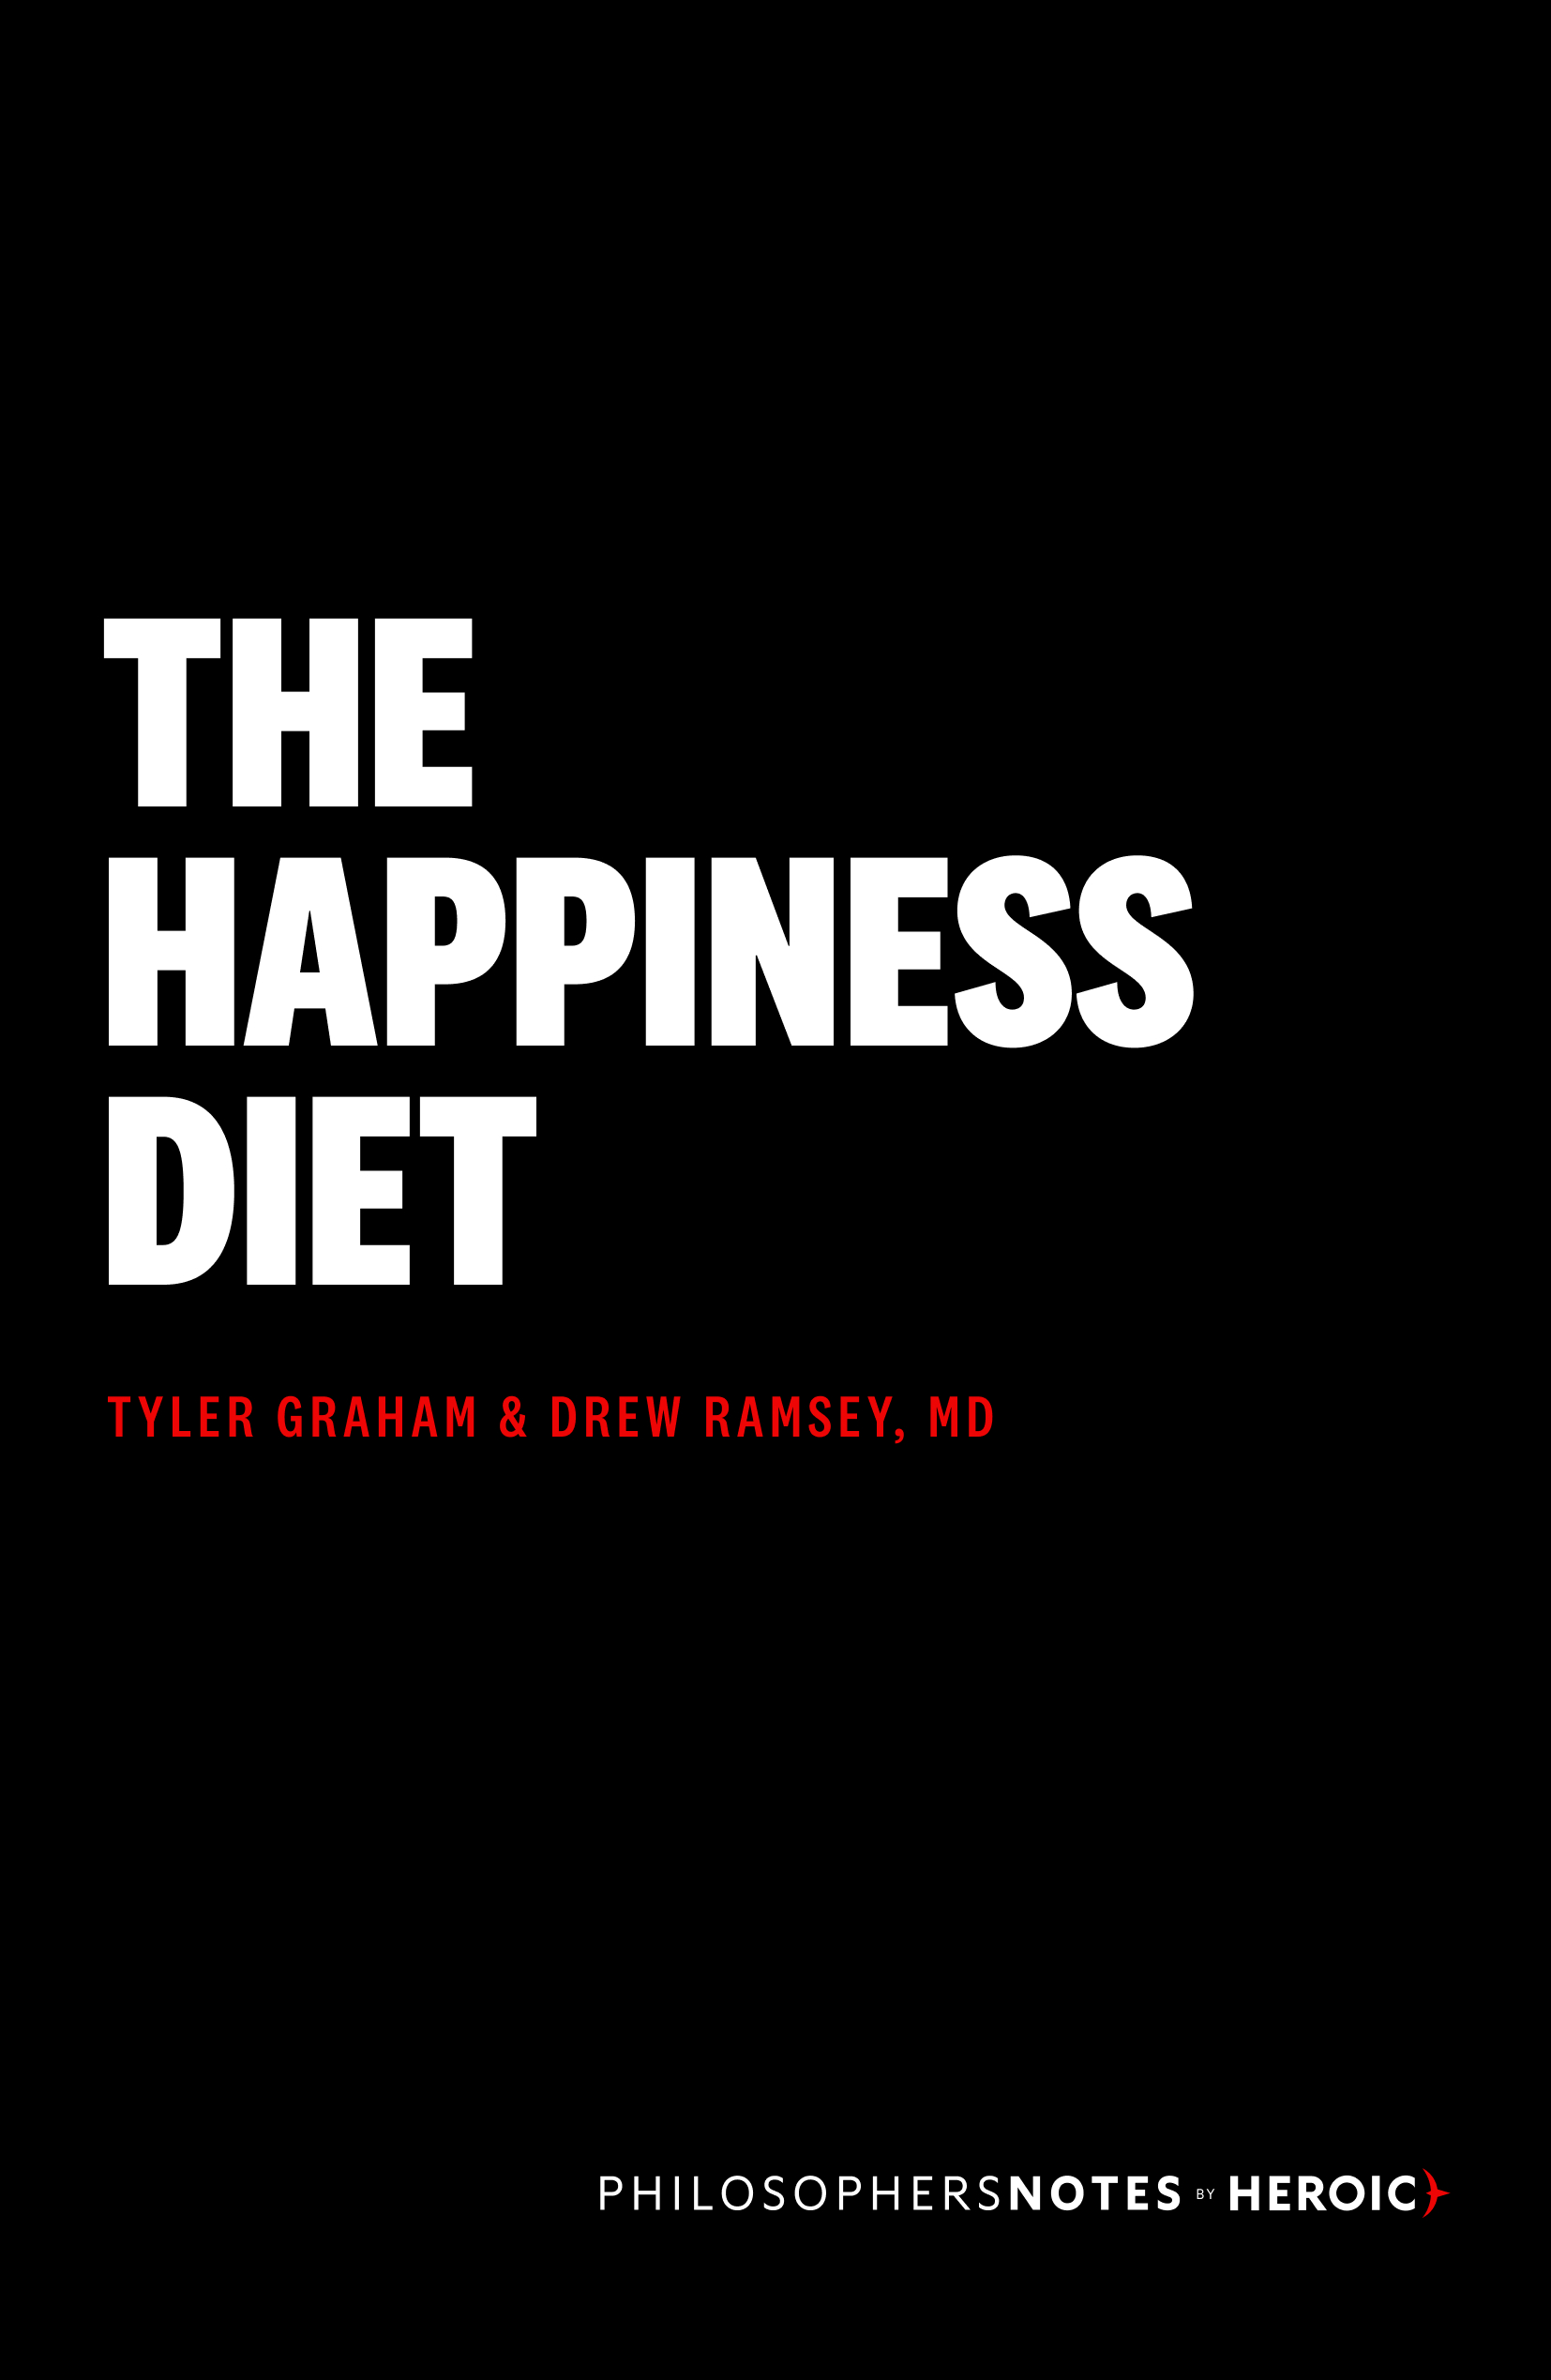 The Happiness Diet Book Cover